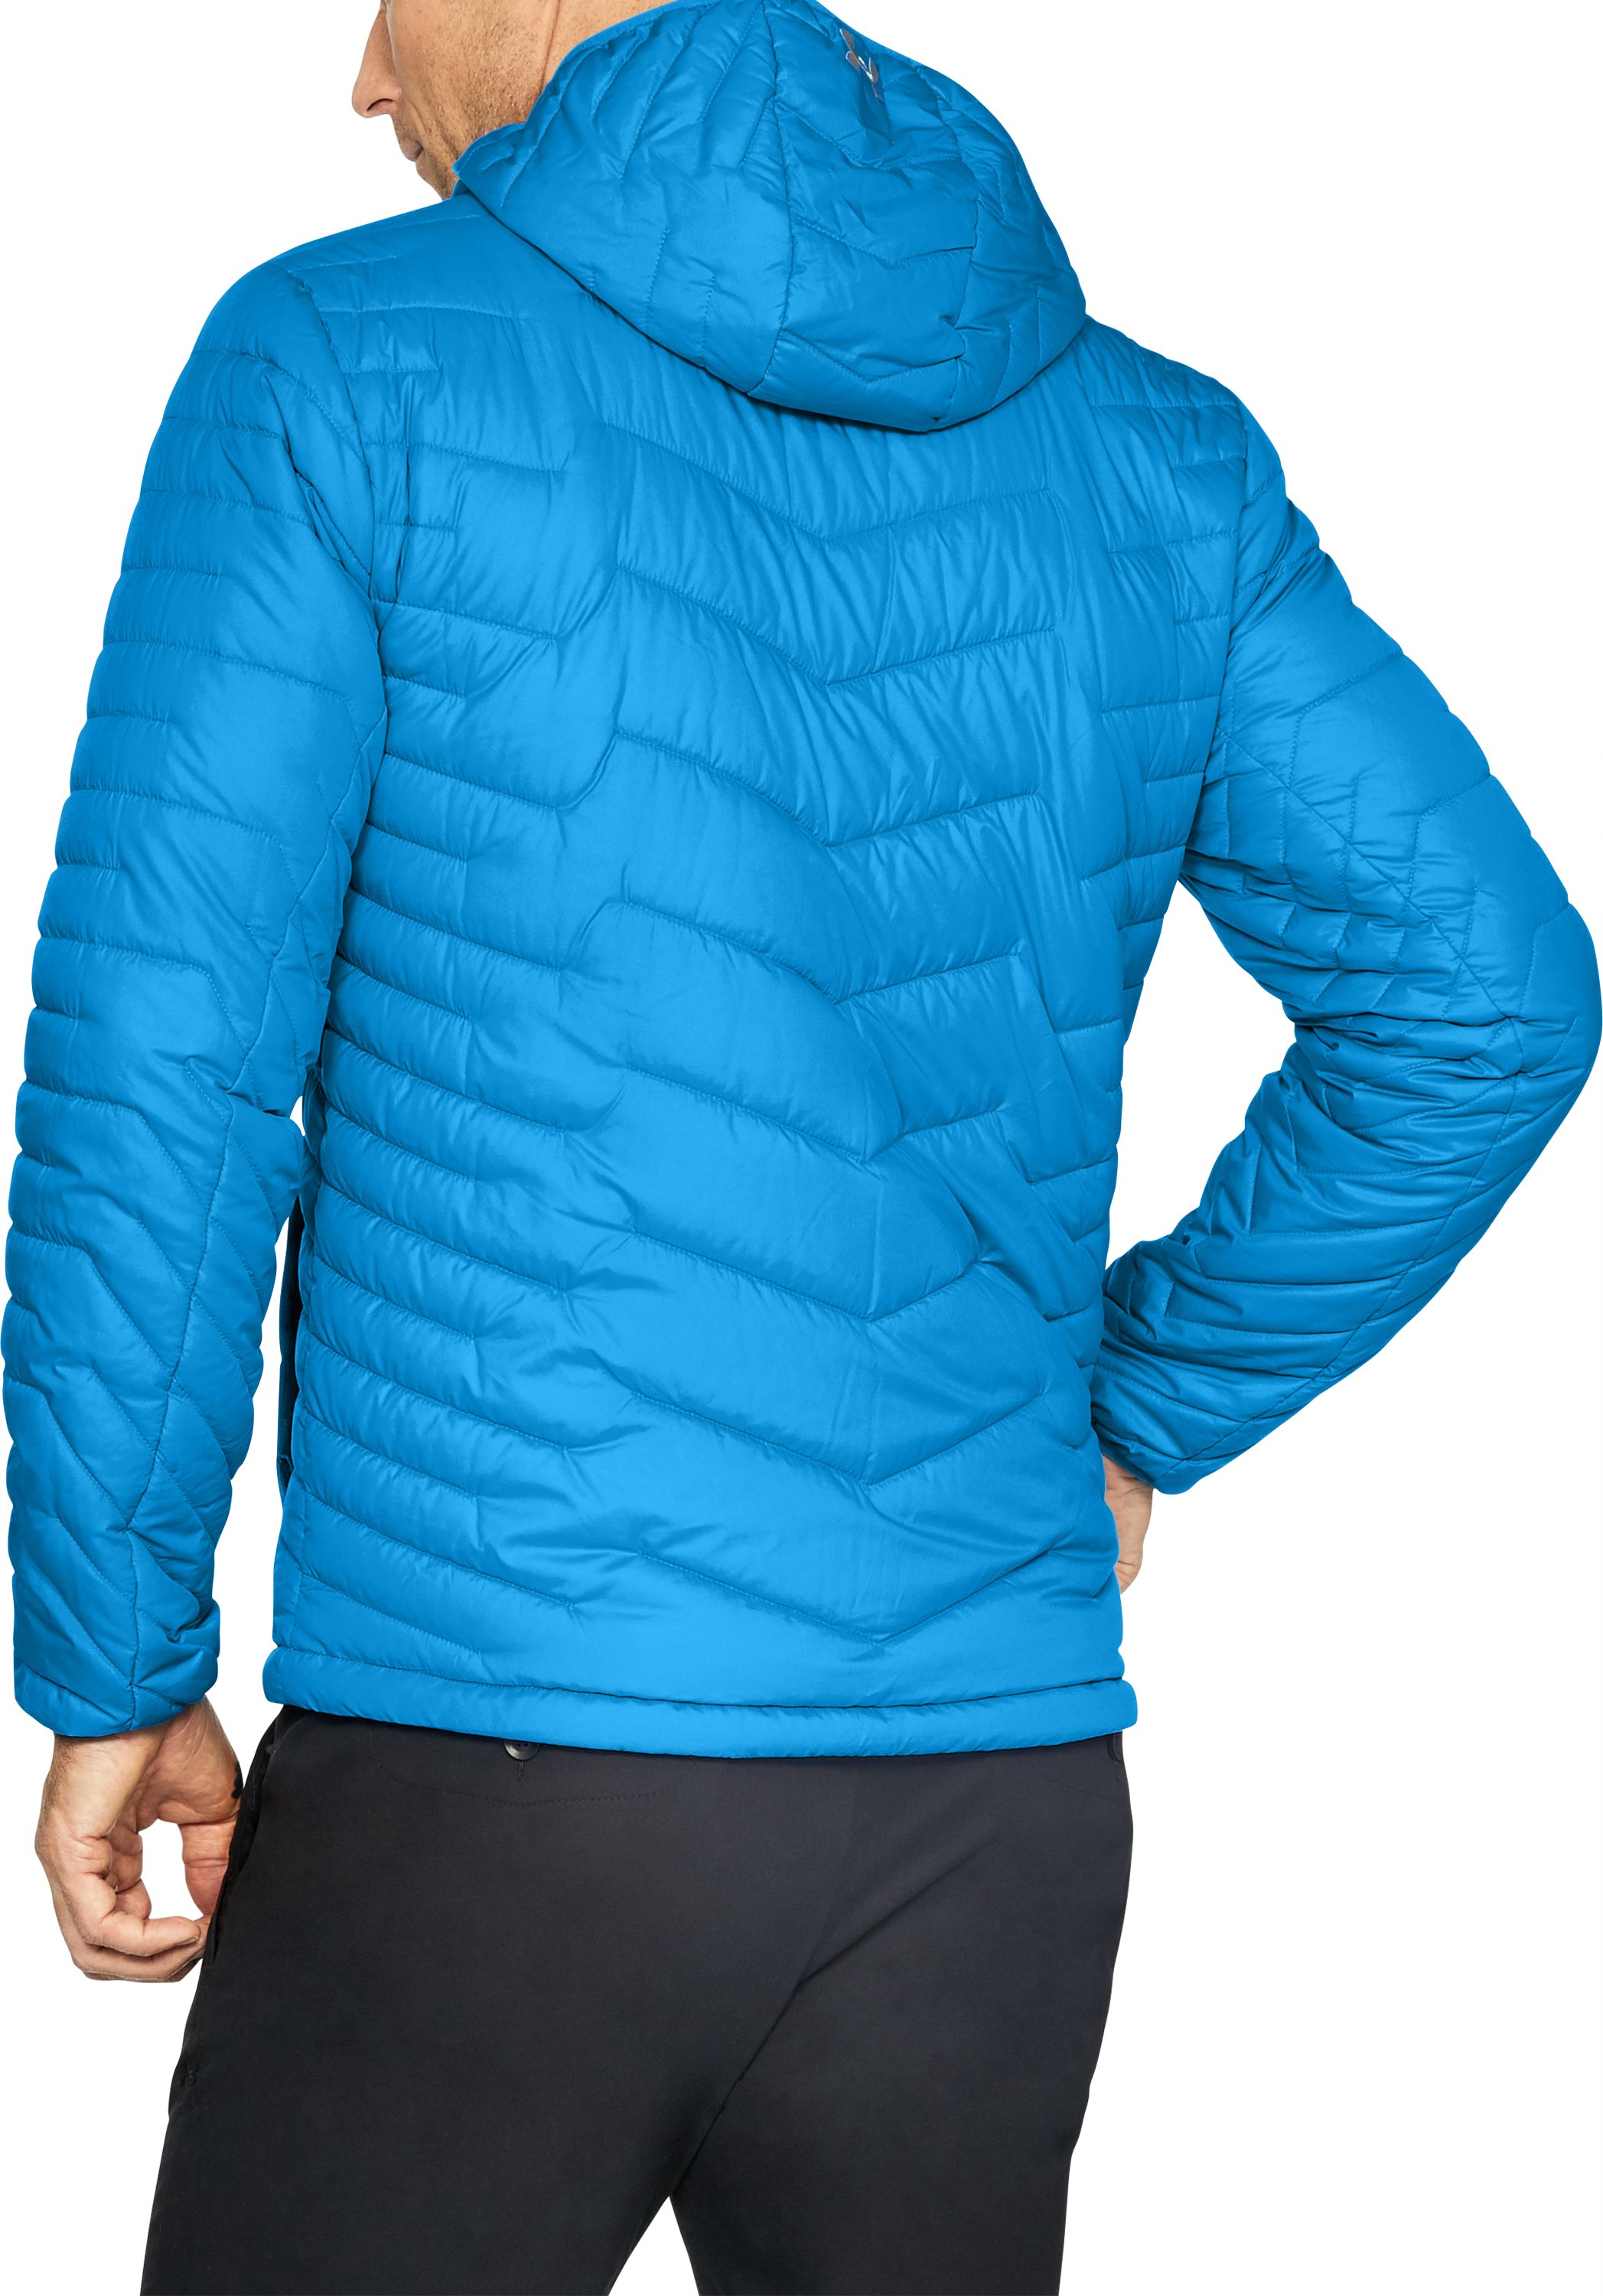 Men's ColdGear® Reactor Hooded Jacket, MAKO BLUE, undefined